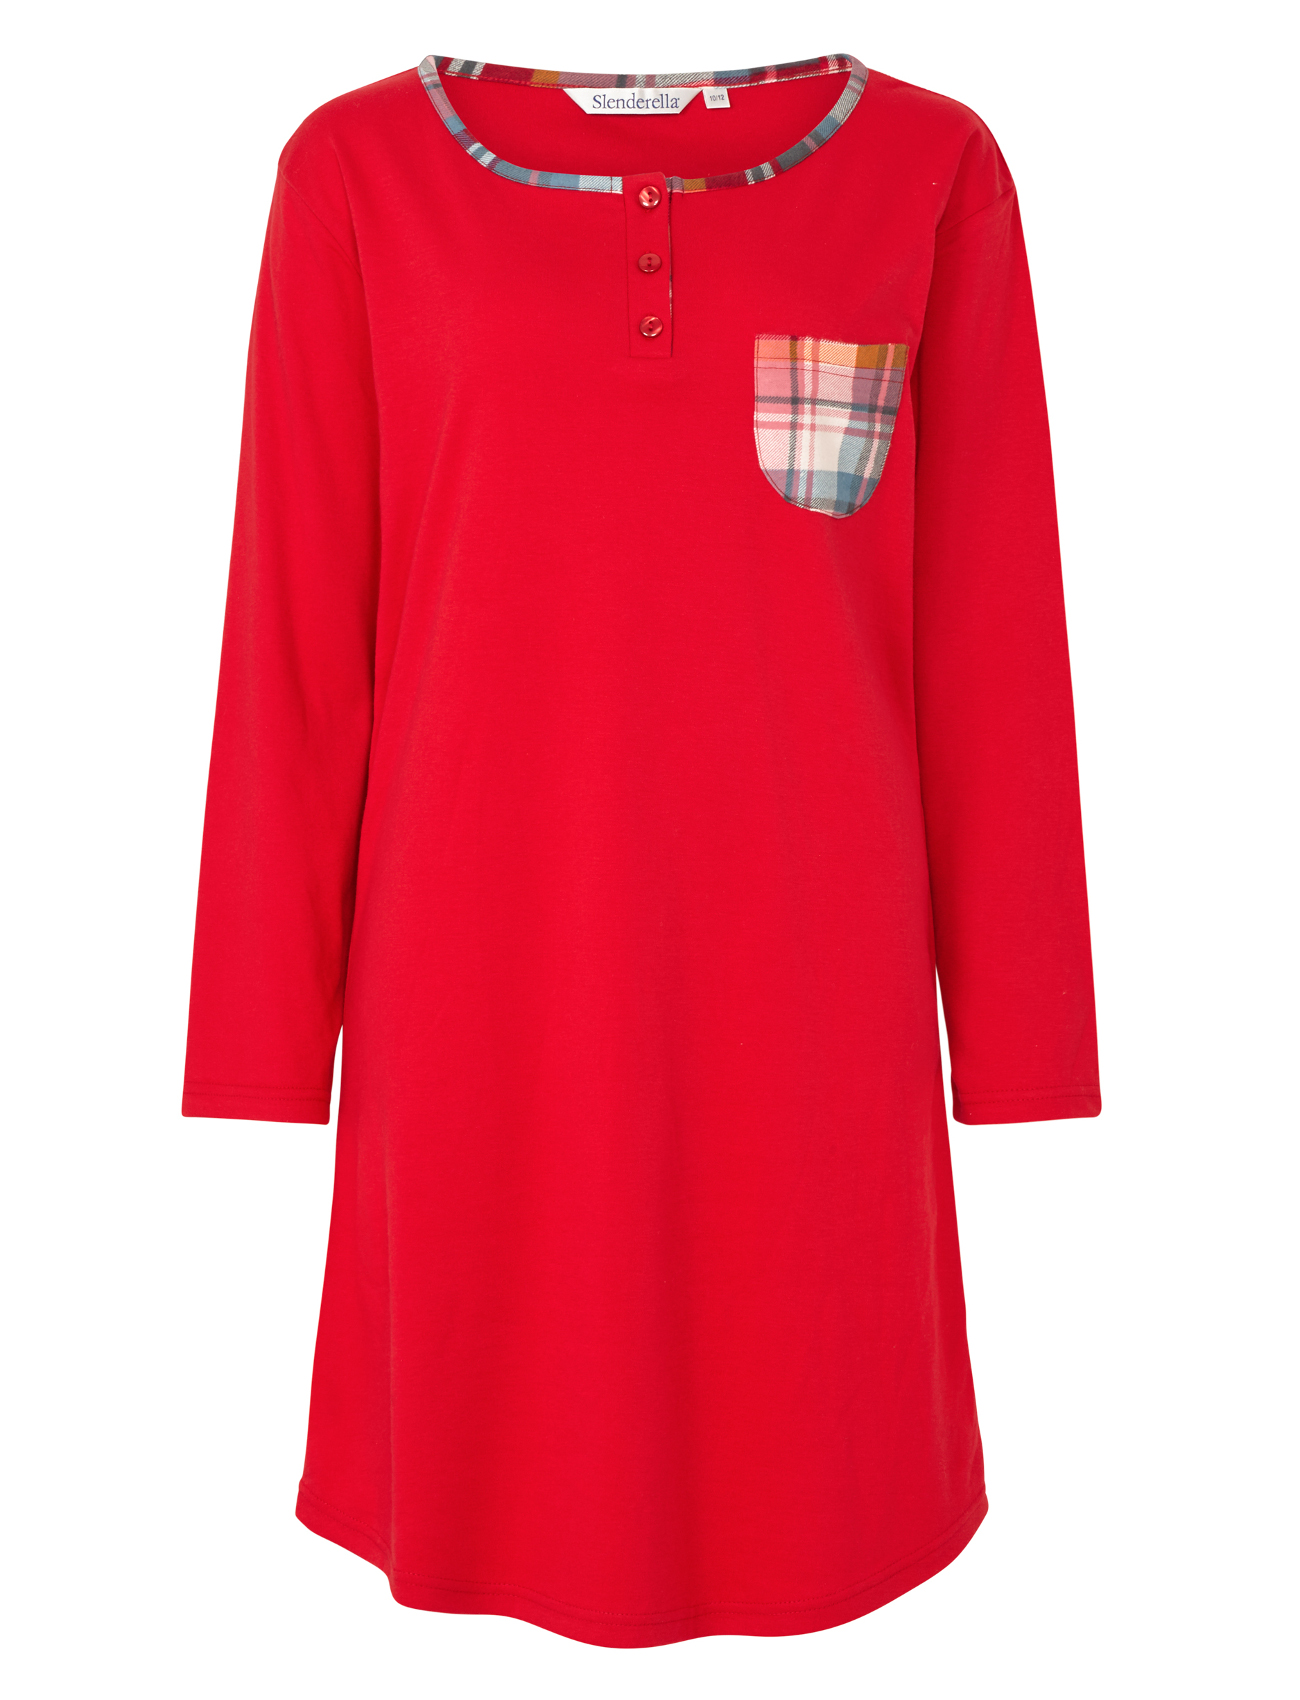 97644d9fd0 Slenderella Nightdress Nightshirt or Pyjamas 100% Cotton Tartan ...